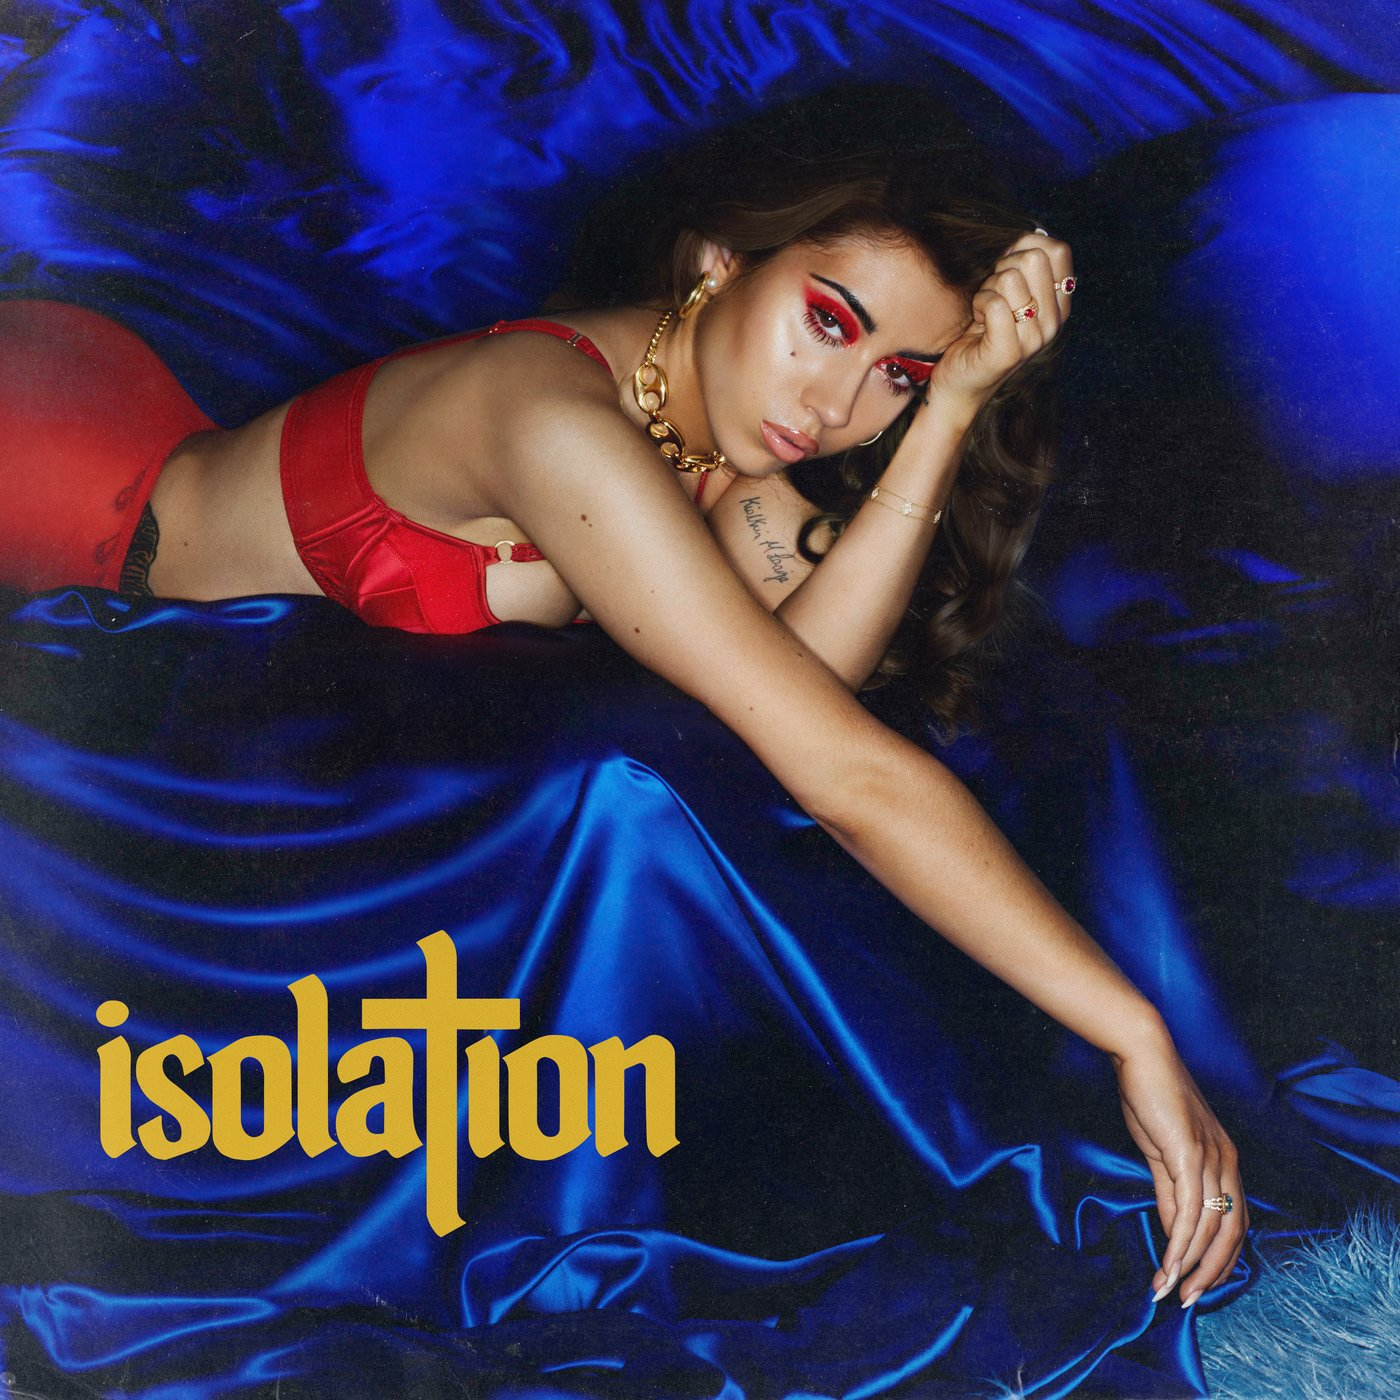 Isolation [LP][Blue] by Interscope